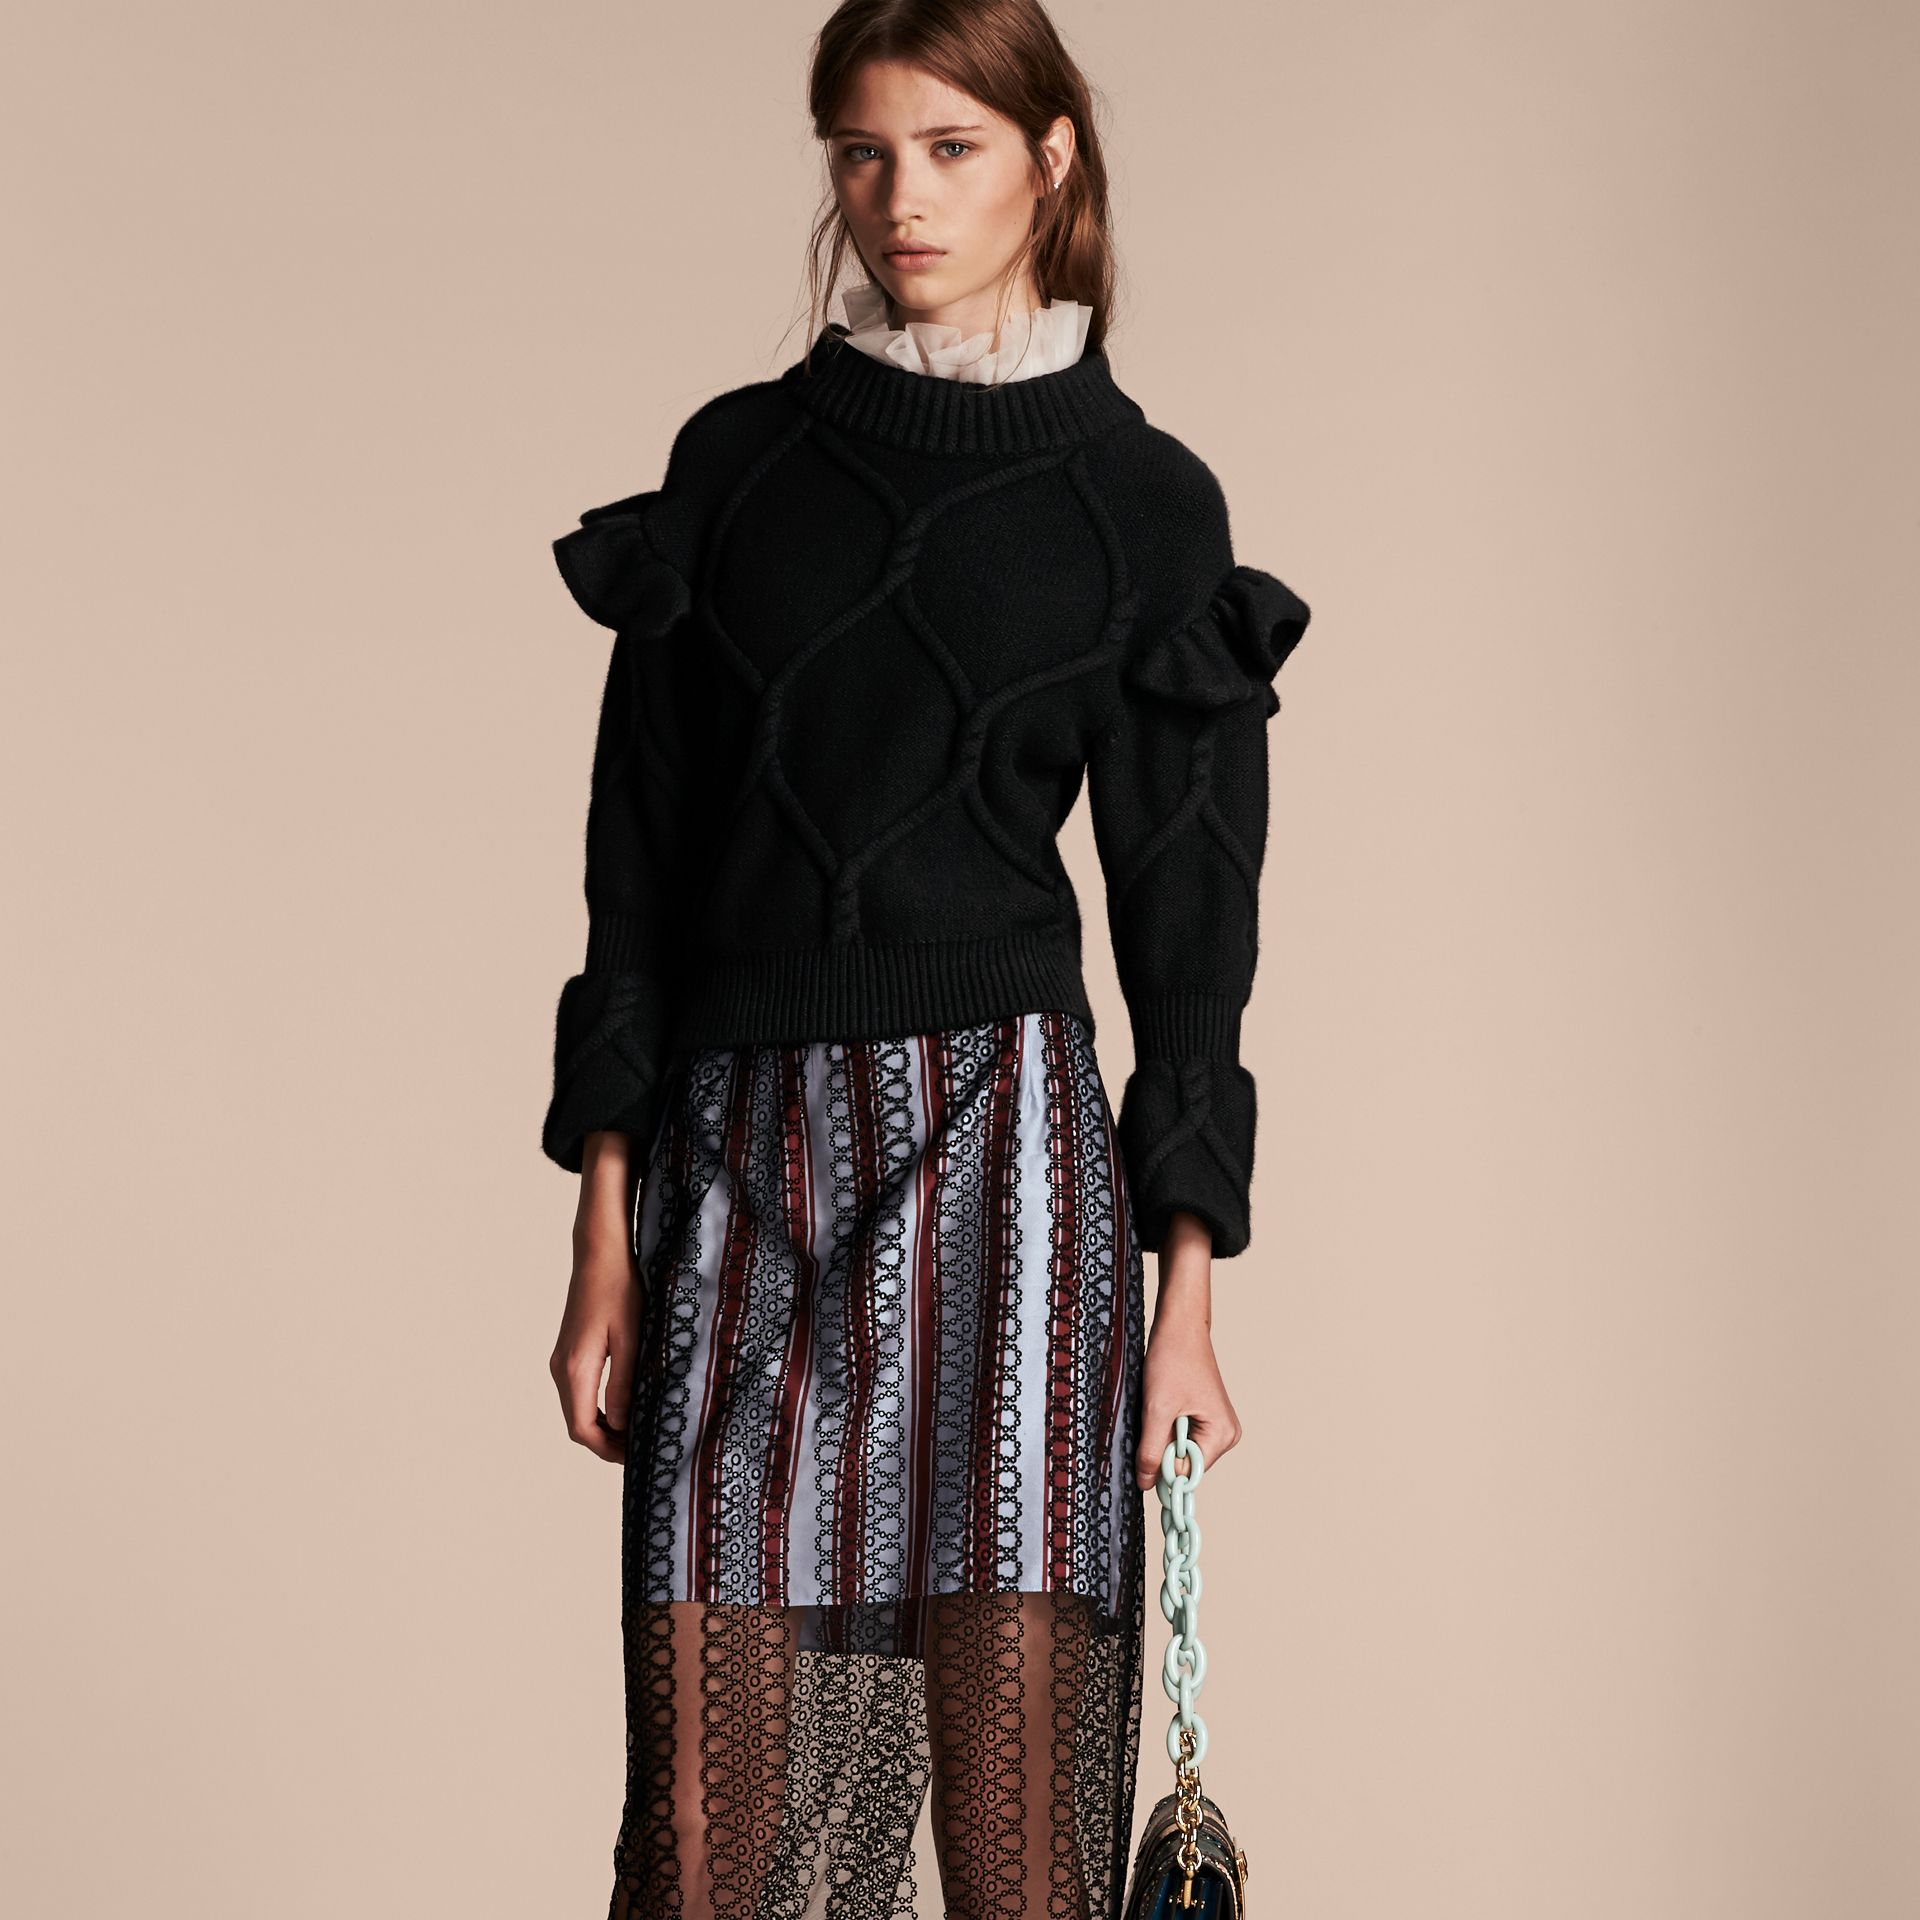 Black Cable Knit Wool Cashmere Sweater with Ruffle Bell Sleeves Black - gallery image 6